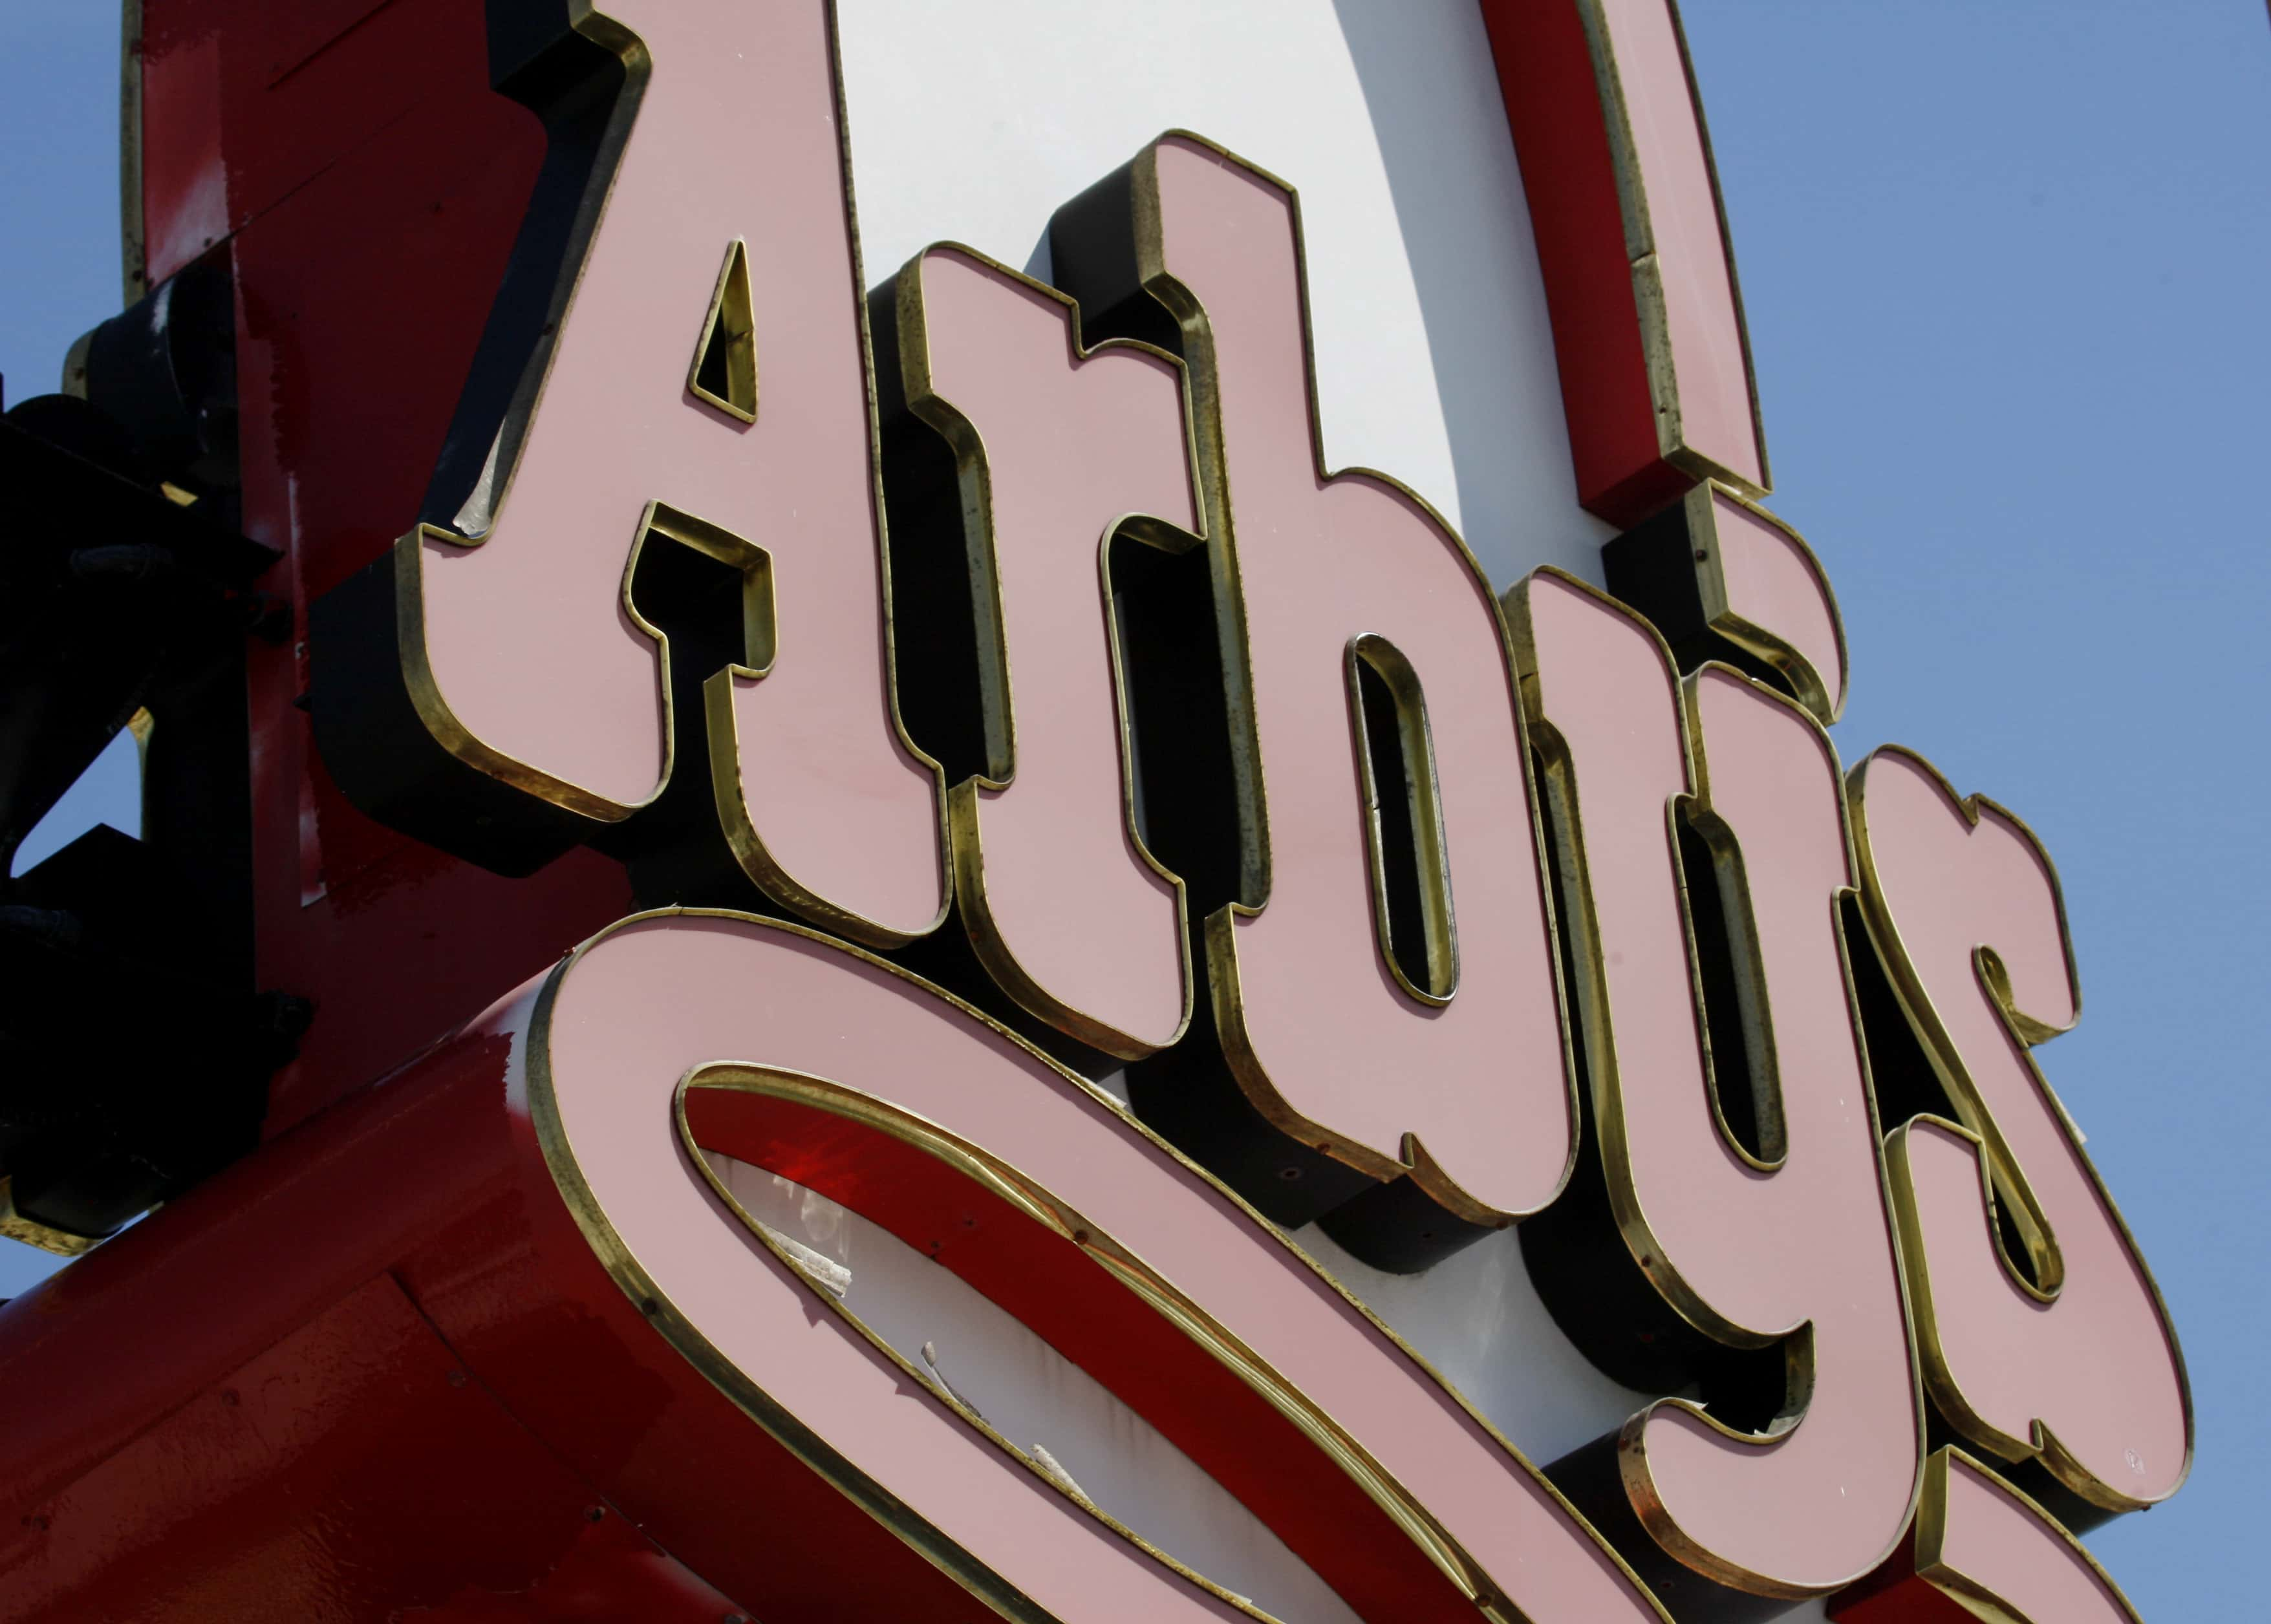 FILE - In this Monday, March 1, 2010 file photo, an Arby's restaurant sign is shown in Cutler Bay, Fla. Wendy's/Arby's Group Inc. said Thursday, Jan. 20, 2011, it is considering selling its Arby's business. (AP Photo/Wilfredo Lee, file)